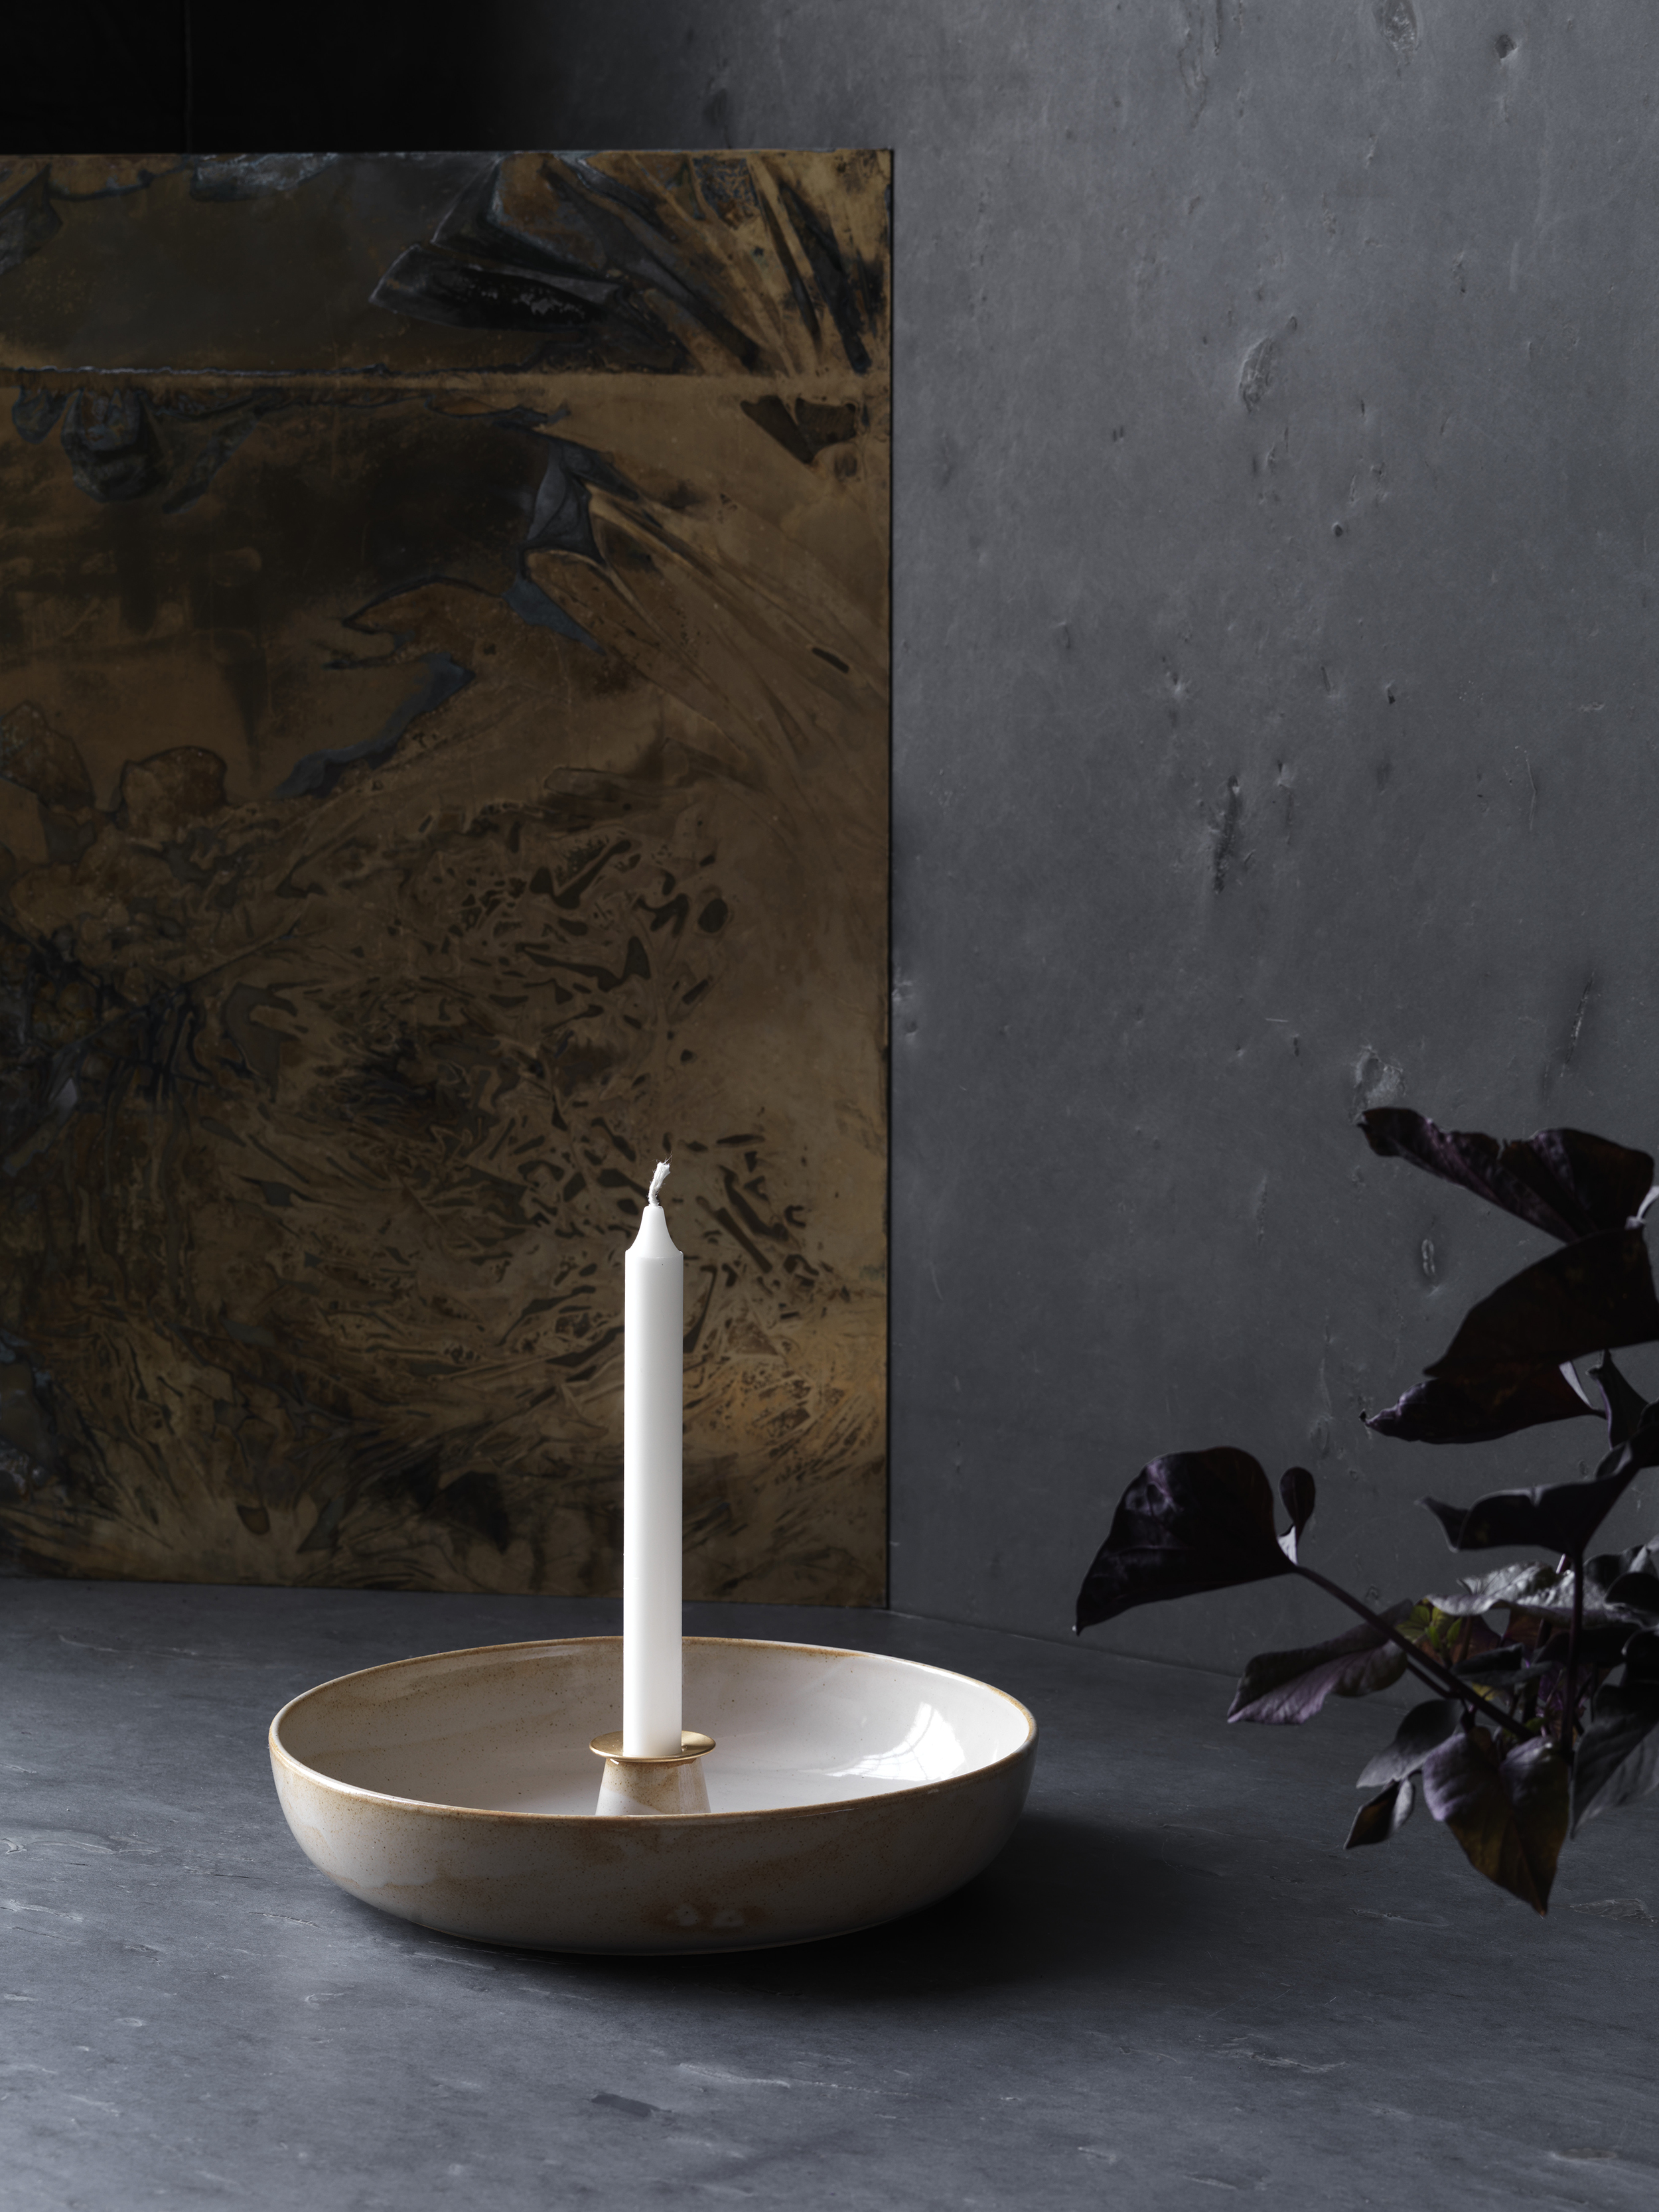 Japanese earthenware by Cecilie Manz for Fritz Hansen